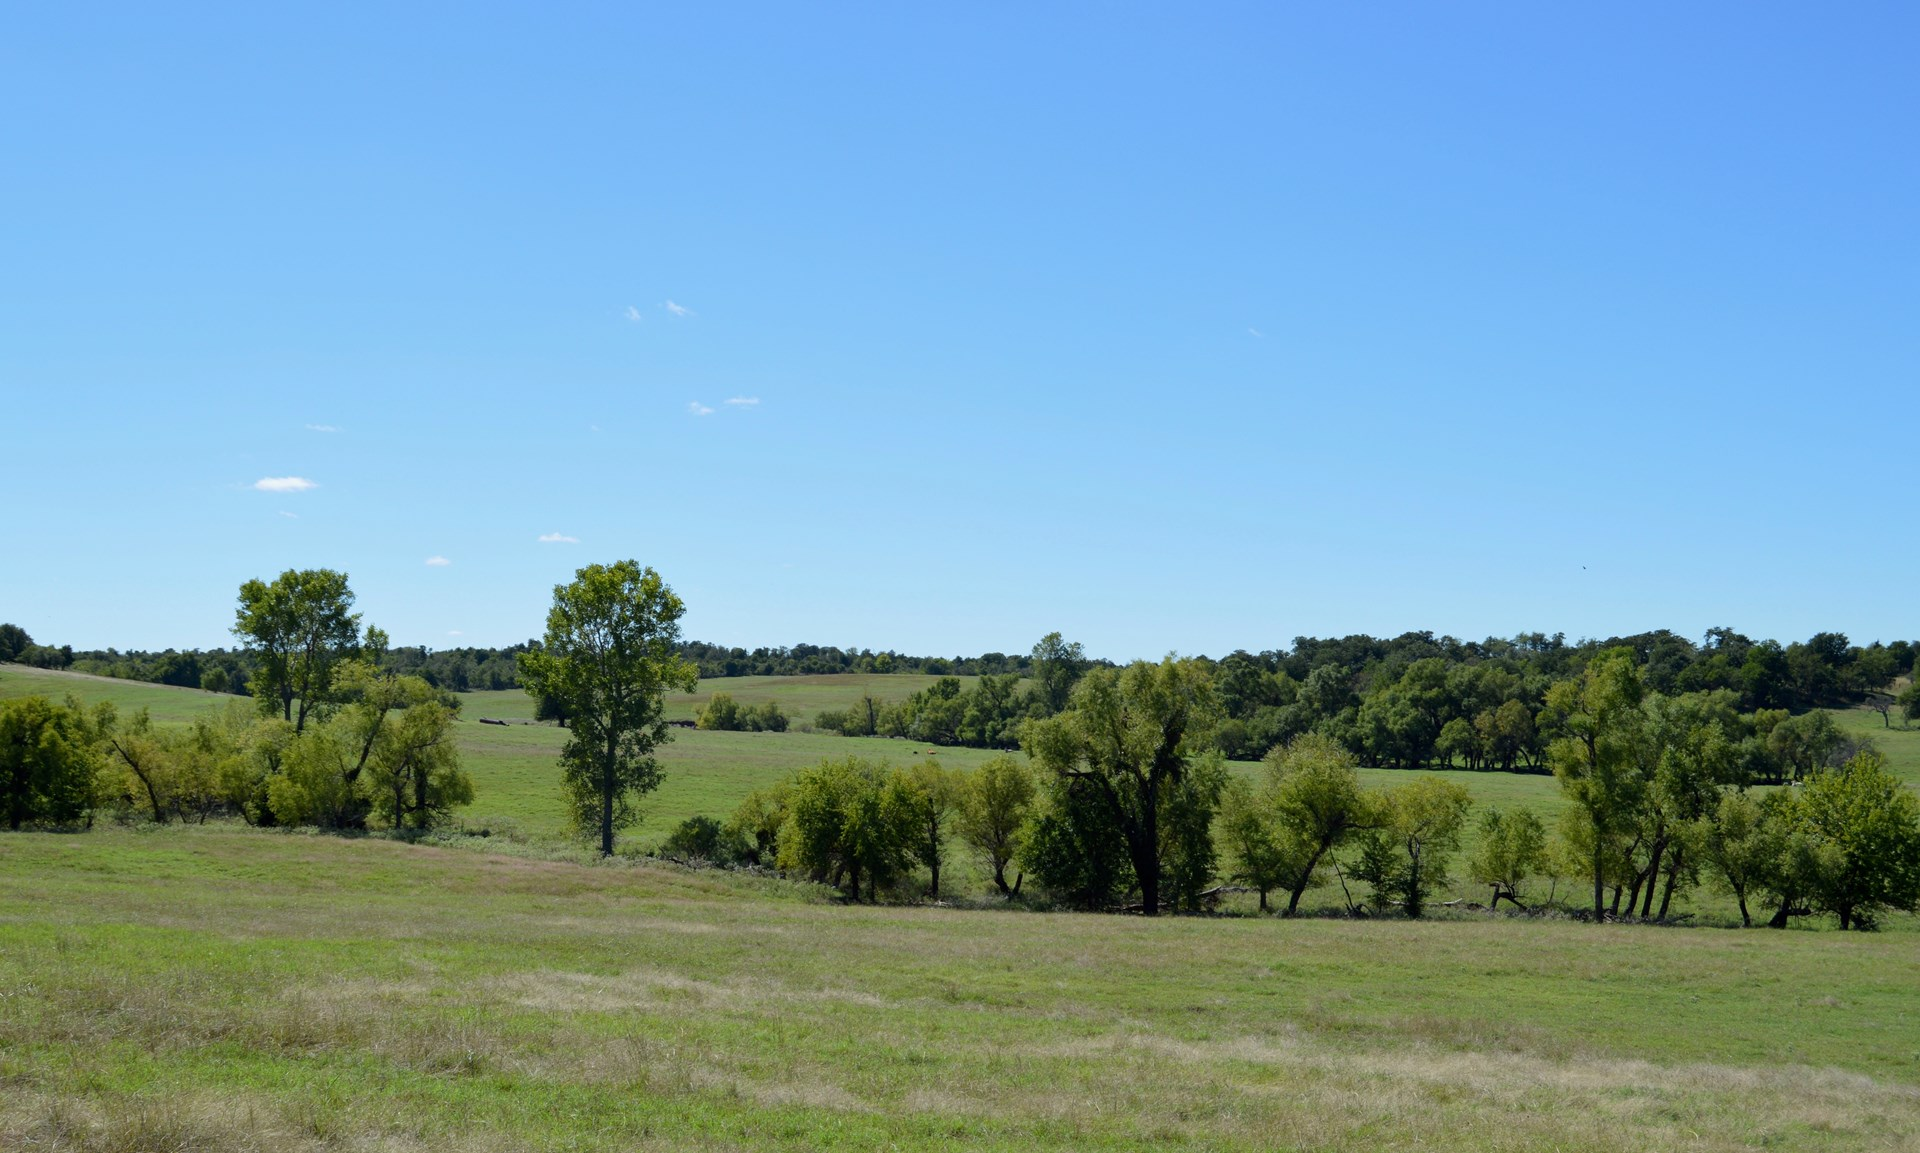 LAND FOR SALE GRADY COUNTY RUSH SPRINGS OKLAHOMA AUCTION